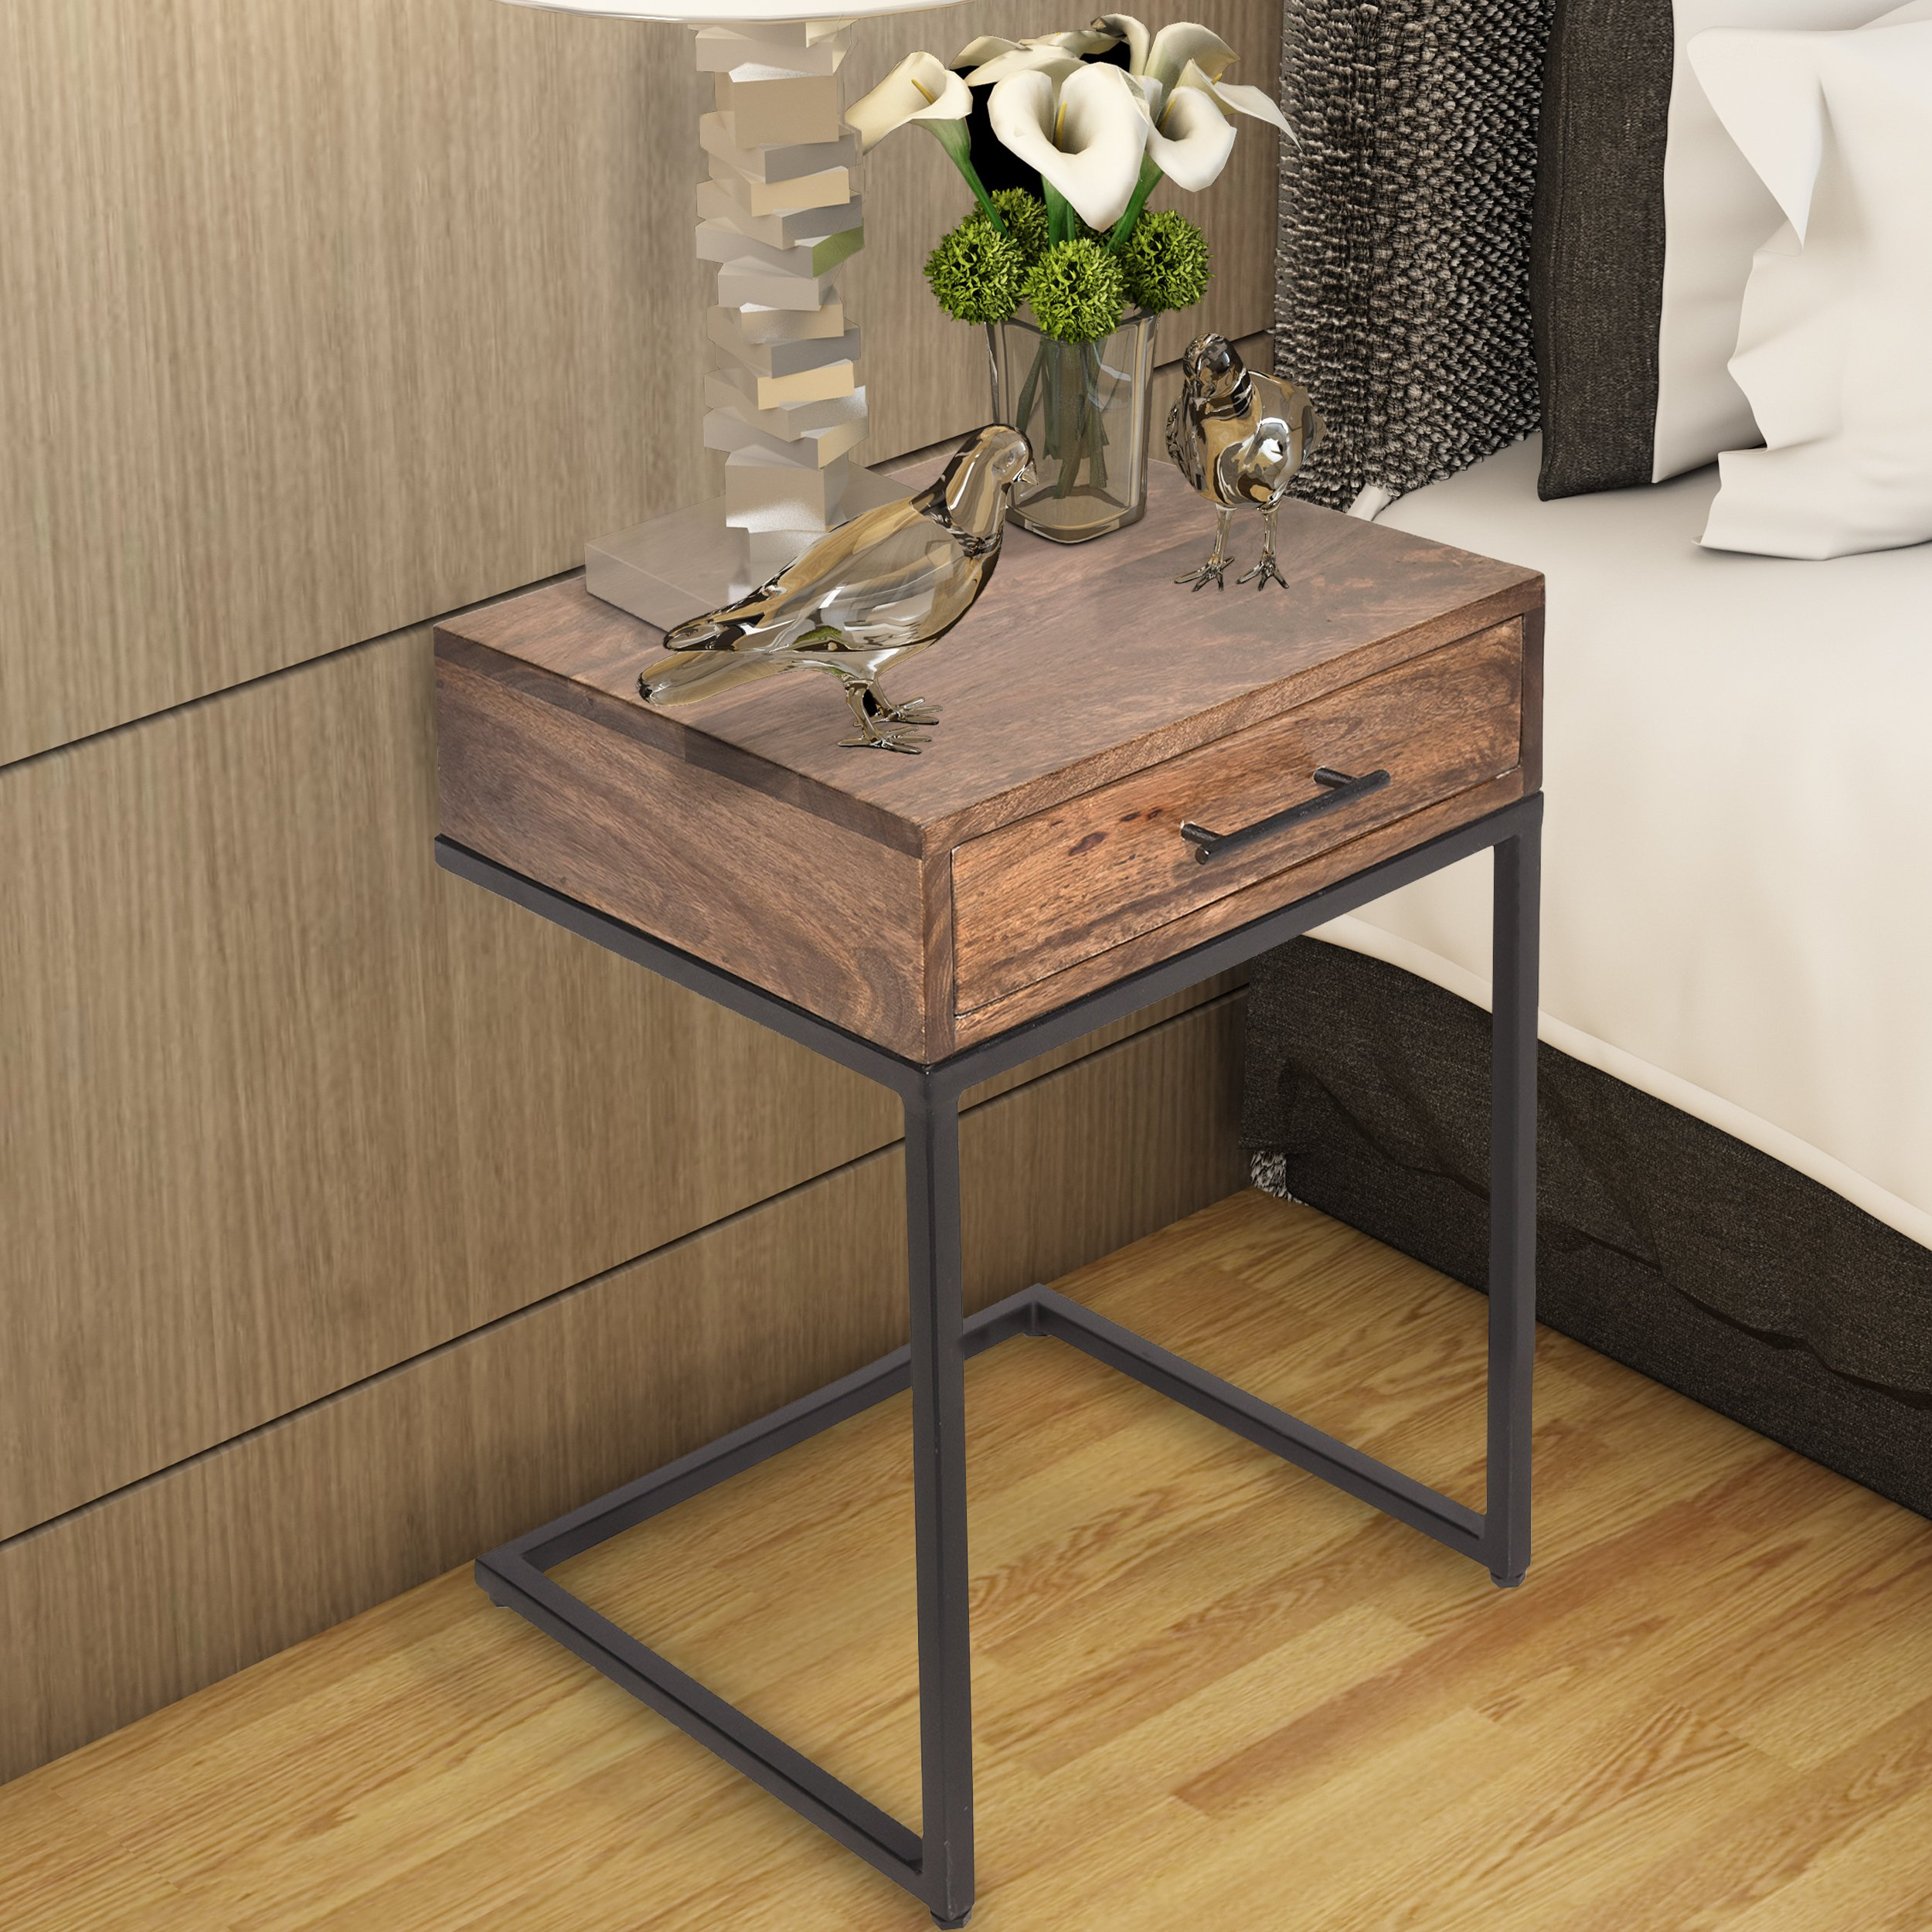 Mango Wood Side Table With Drawer And Cantilever Iron Base Brown And Black Side Table Wood Side Table With Drawer Wooden Side Table